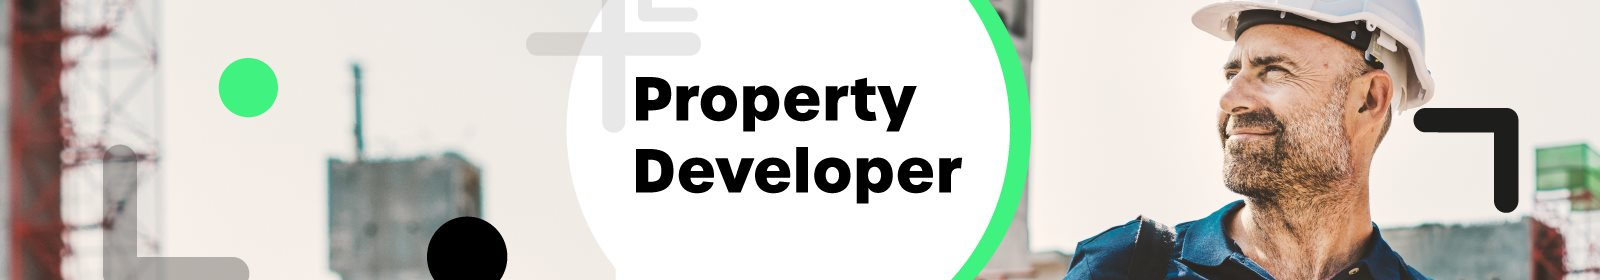 Property developer guide: A guide to becoming a property developer